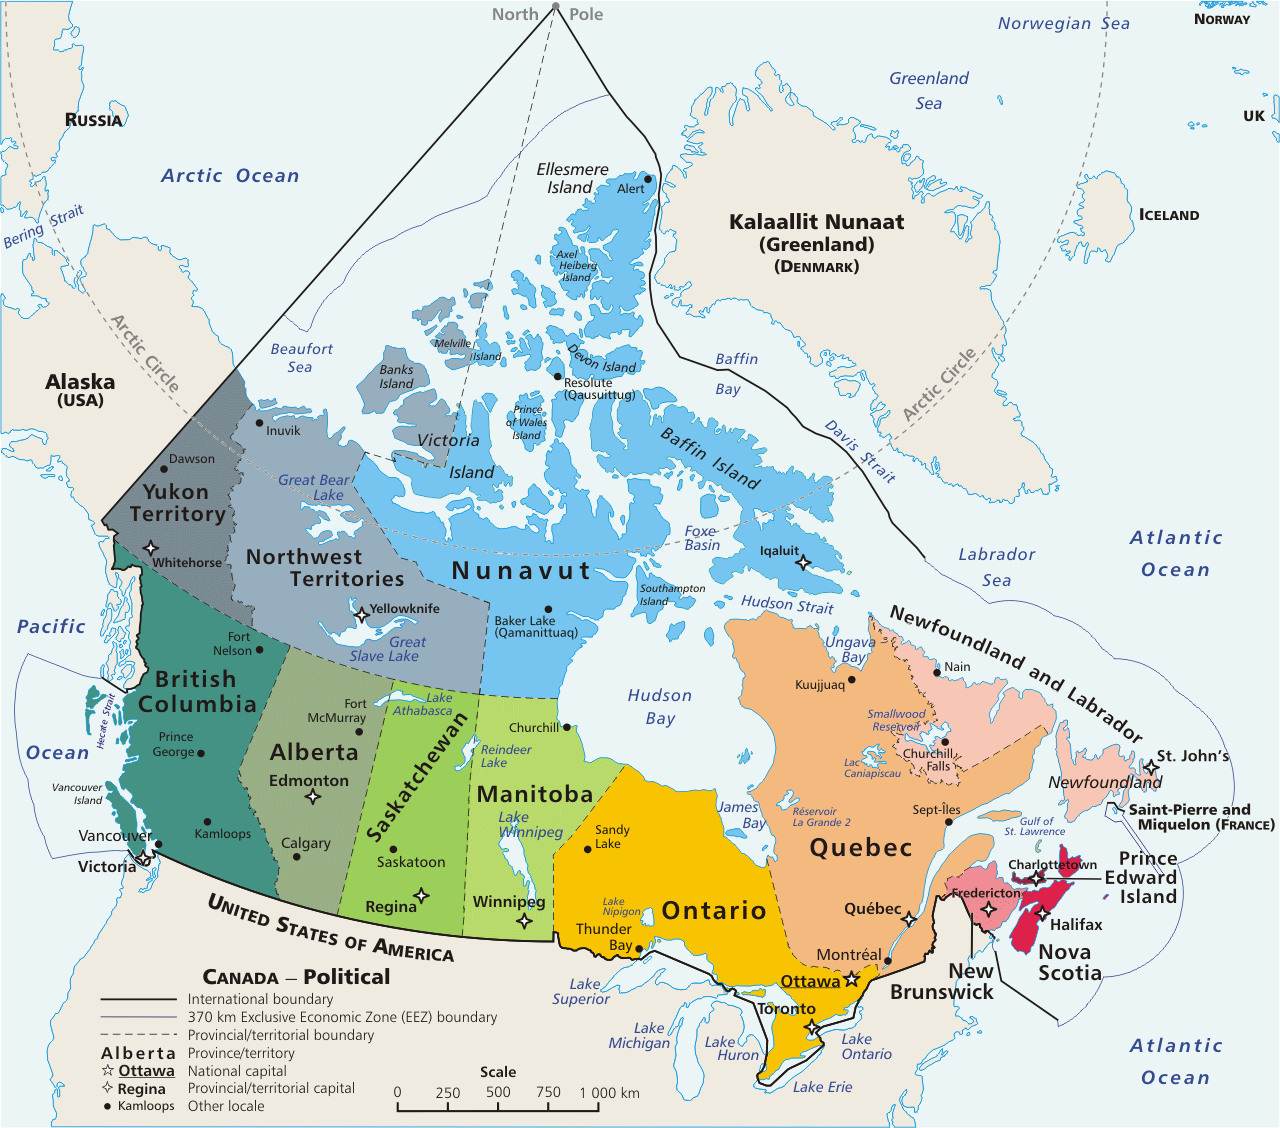 Hope Canada Map.I Hope To One Day Travel Across Canada And Be Able To See The Entire